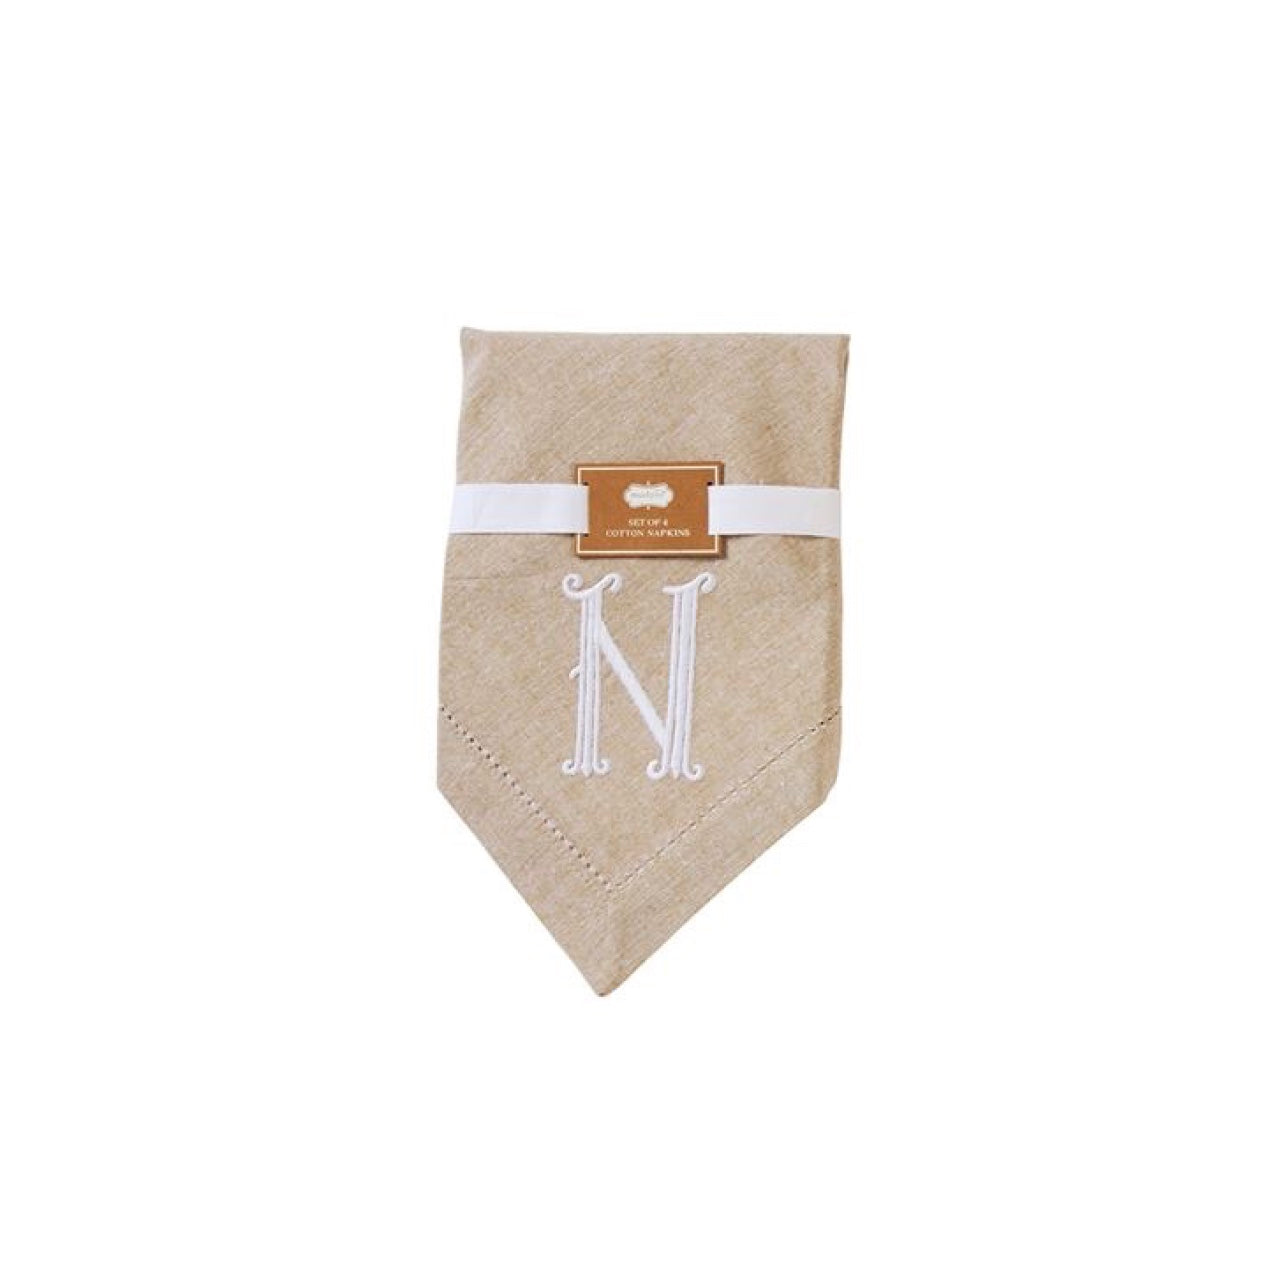 Monogrammed Napkin Set - Initial N, MP-Mud Pie, Putti Fine Furnishings